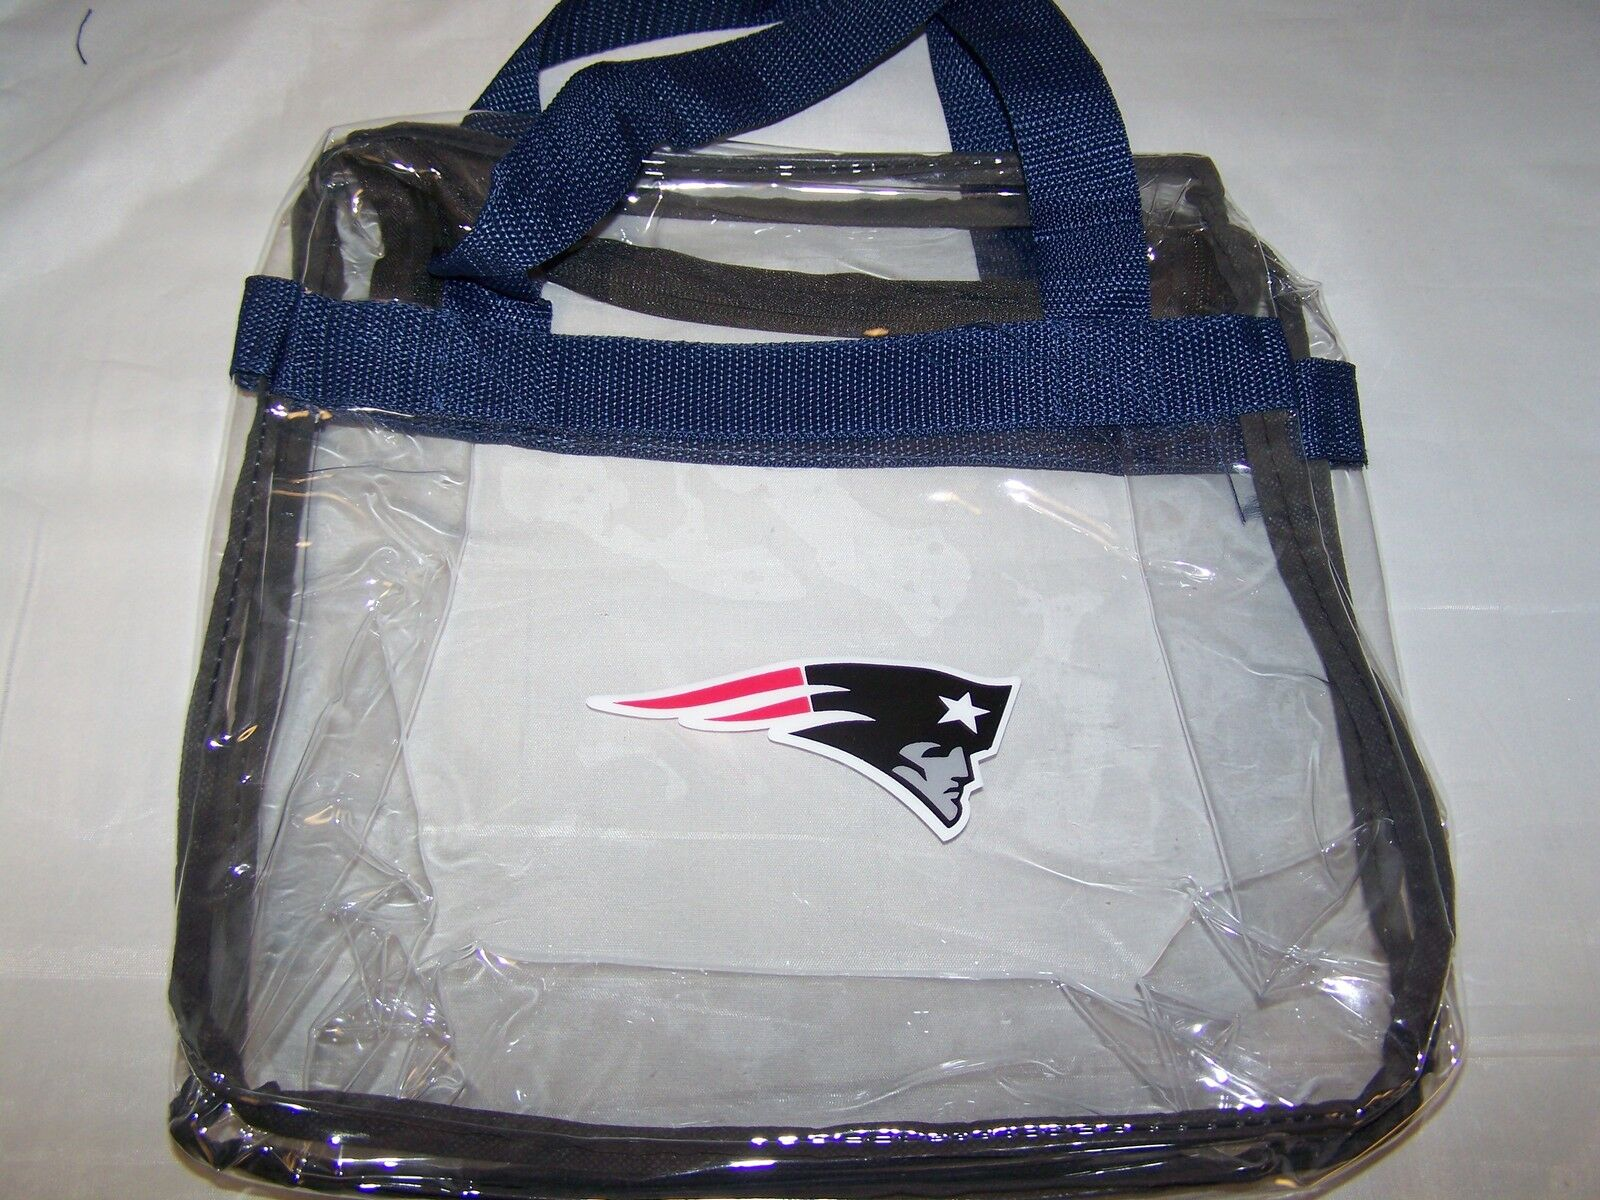 New England Patriots NFL Logo Clear Stadium Approved Tote Messenger Bag 12x6x12quot;  eBay